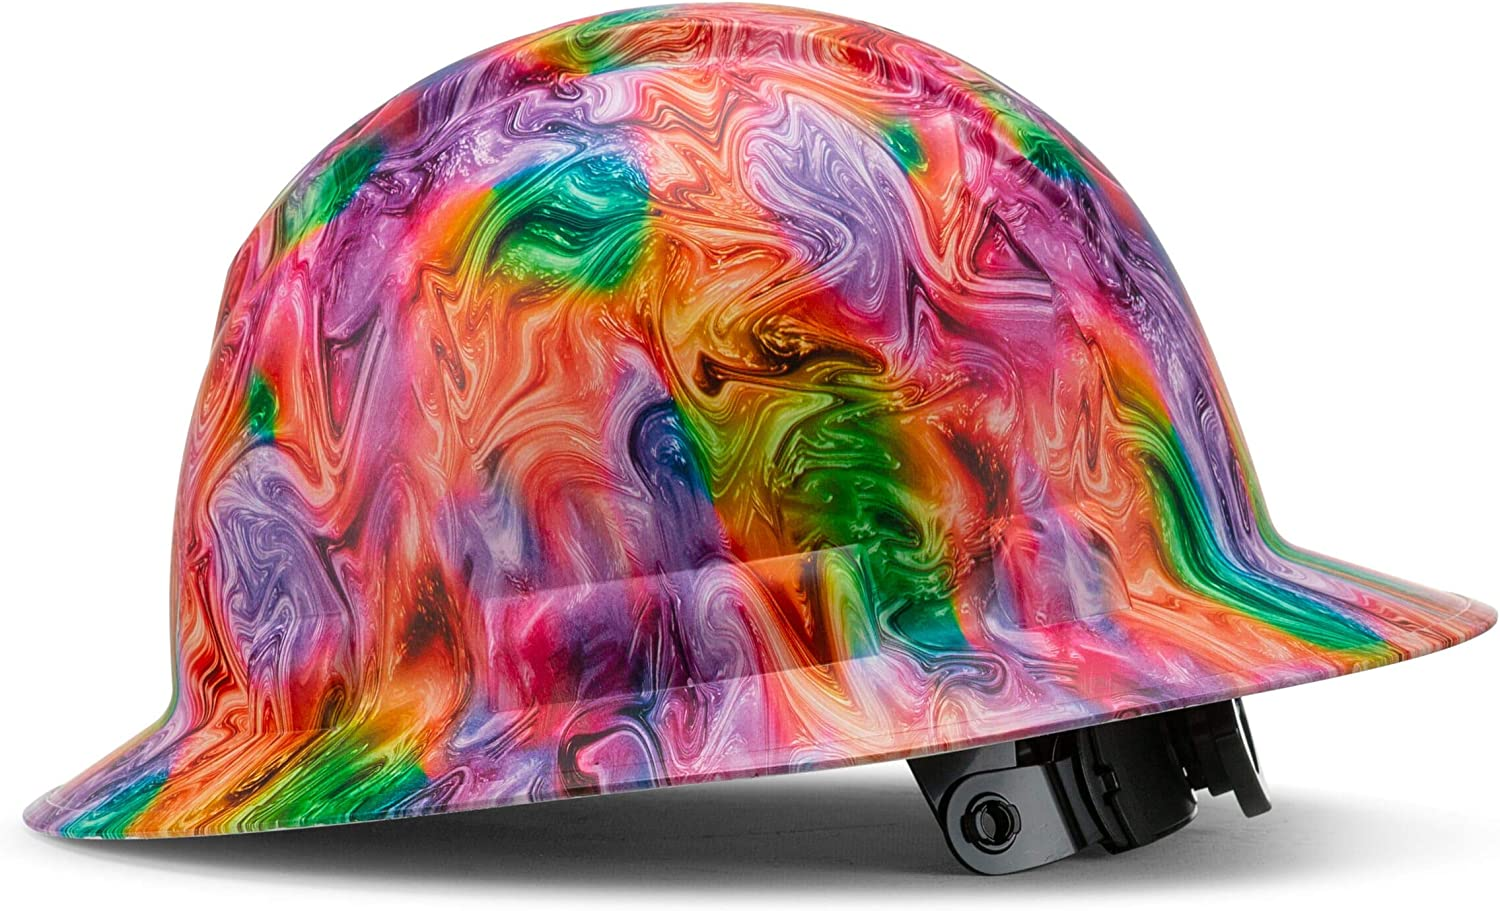 Full Brim Clearance SALE! Limited time! Hard Hat Construction Women Men OSHA Miami Mall Safety Hardhats